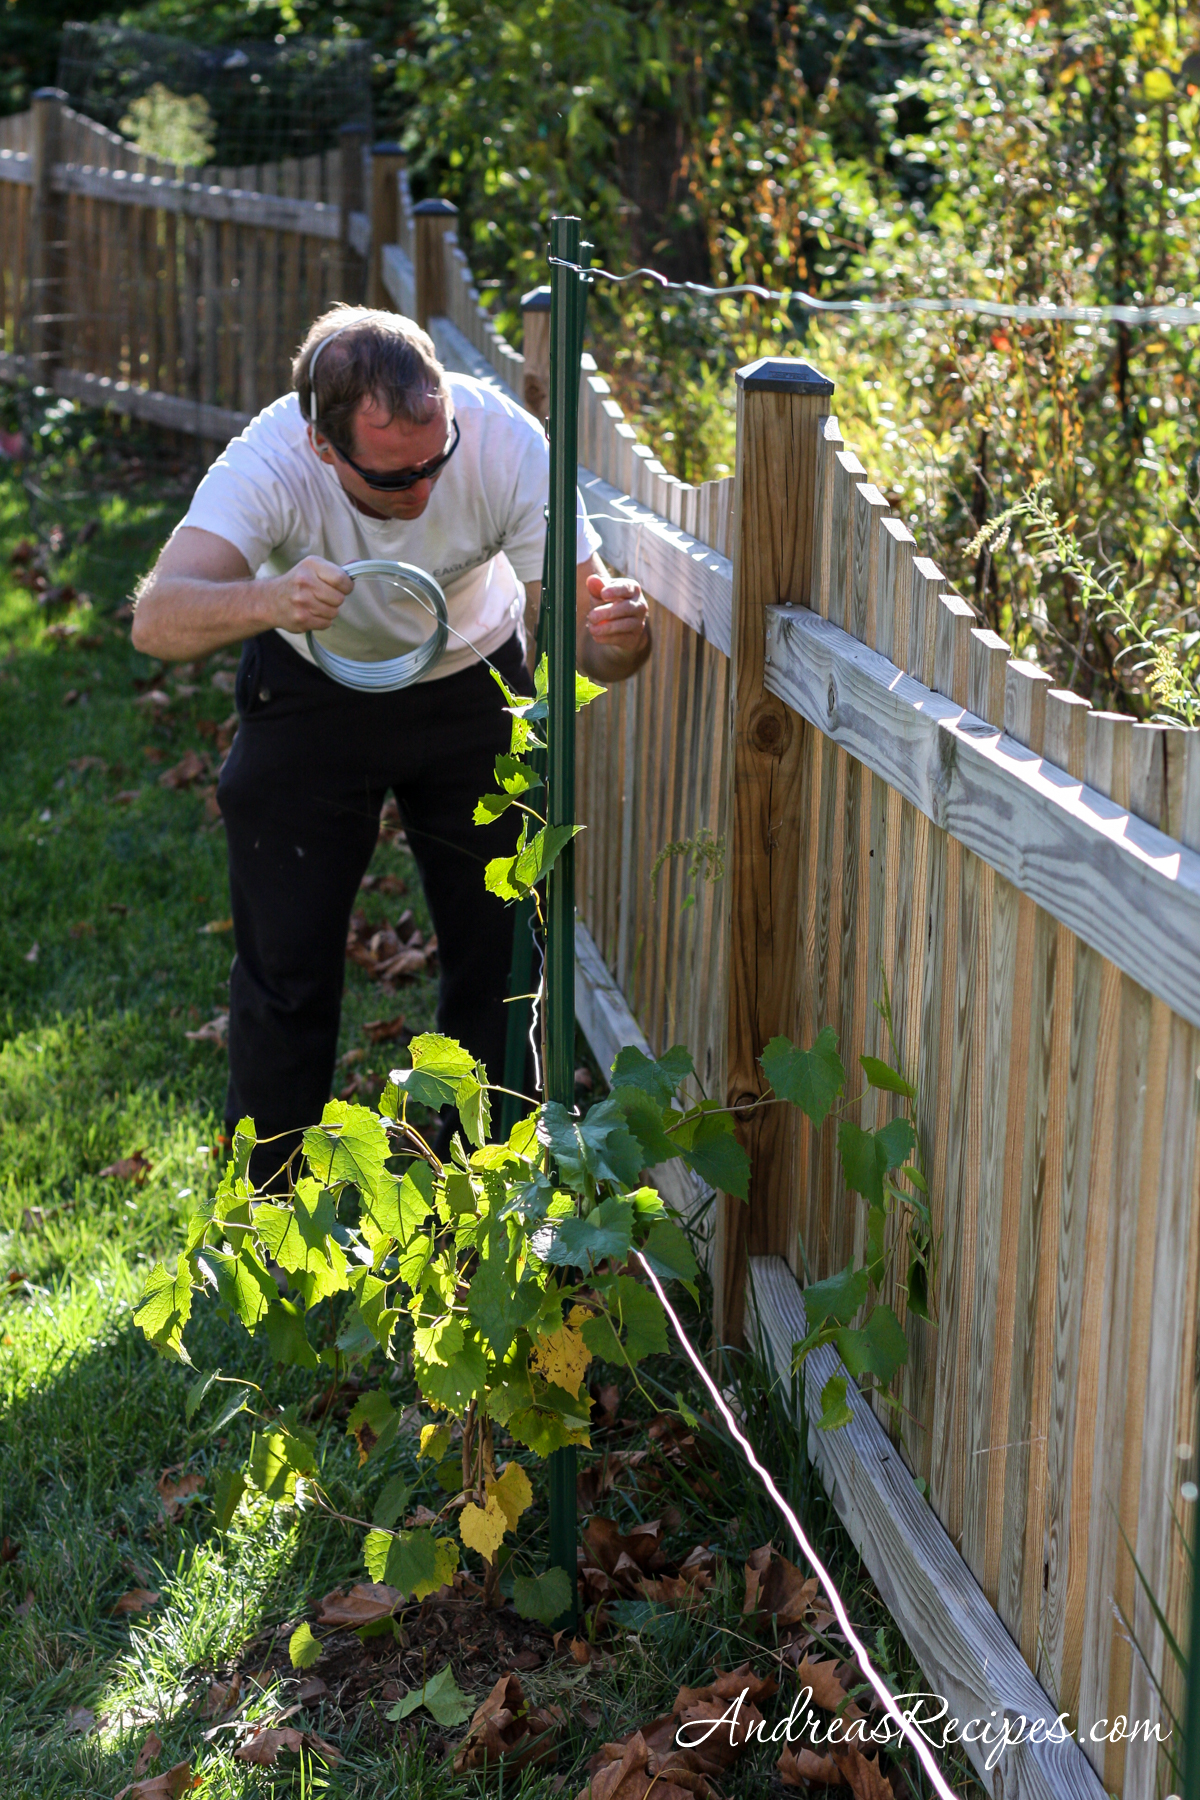 Michael setting up the grape trellis - Andrea Meyers